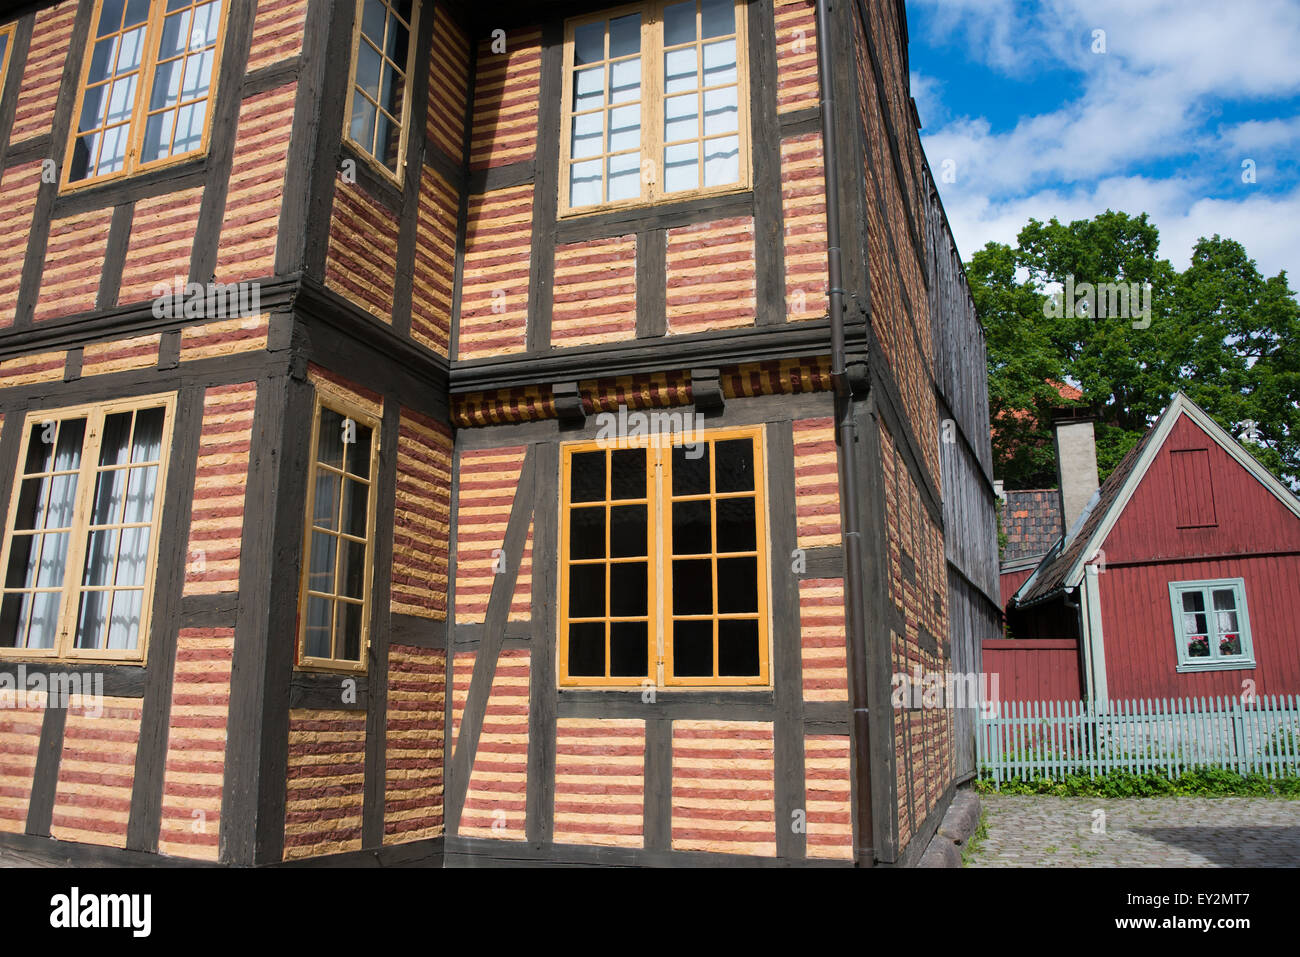 Norway, Oslo, Norsk Folk Museum (aka Norsk Folkemuseum), Historic wooden Town House mansion (#221) c. 1700-1722. - Stock Image